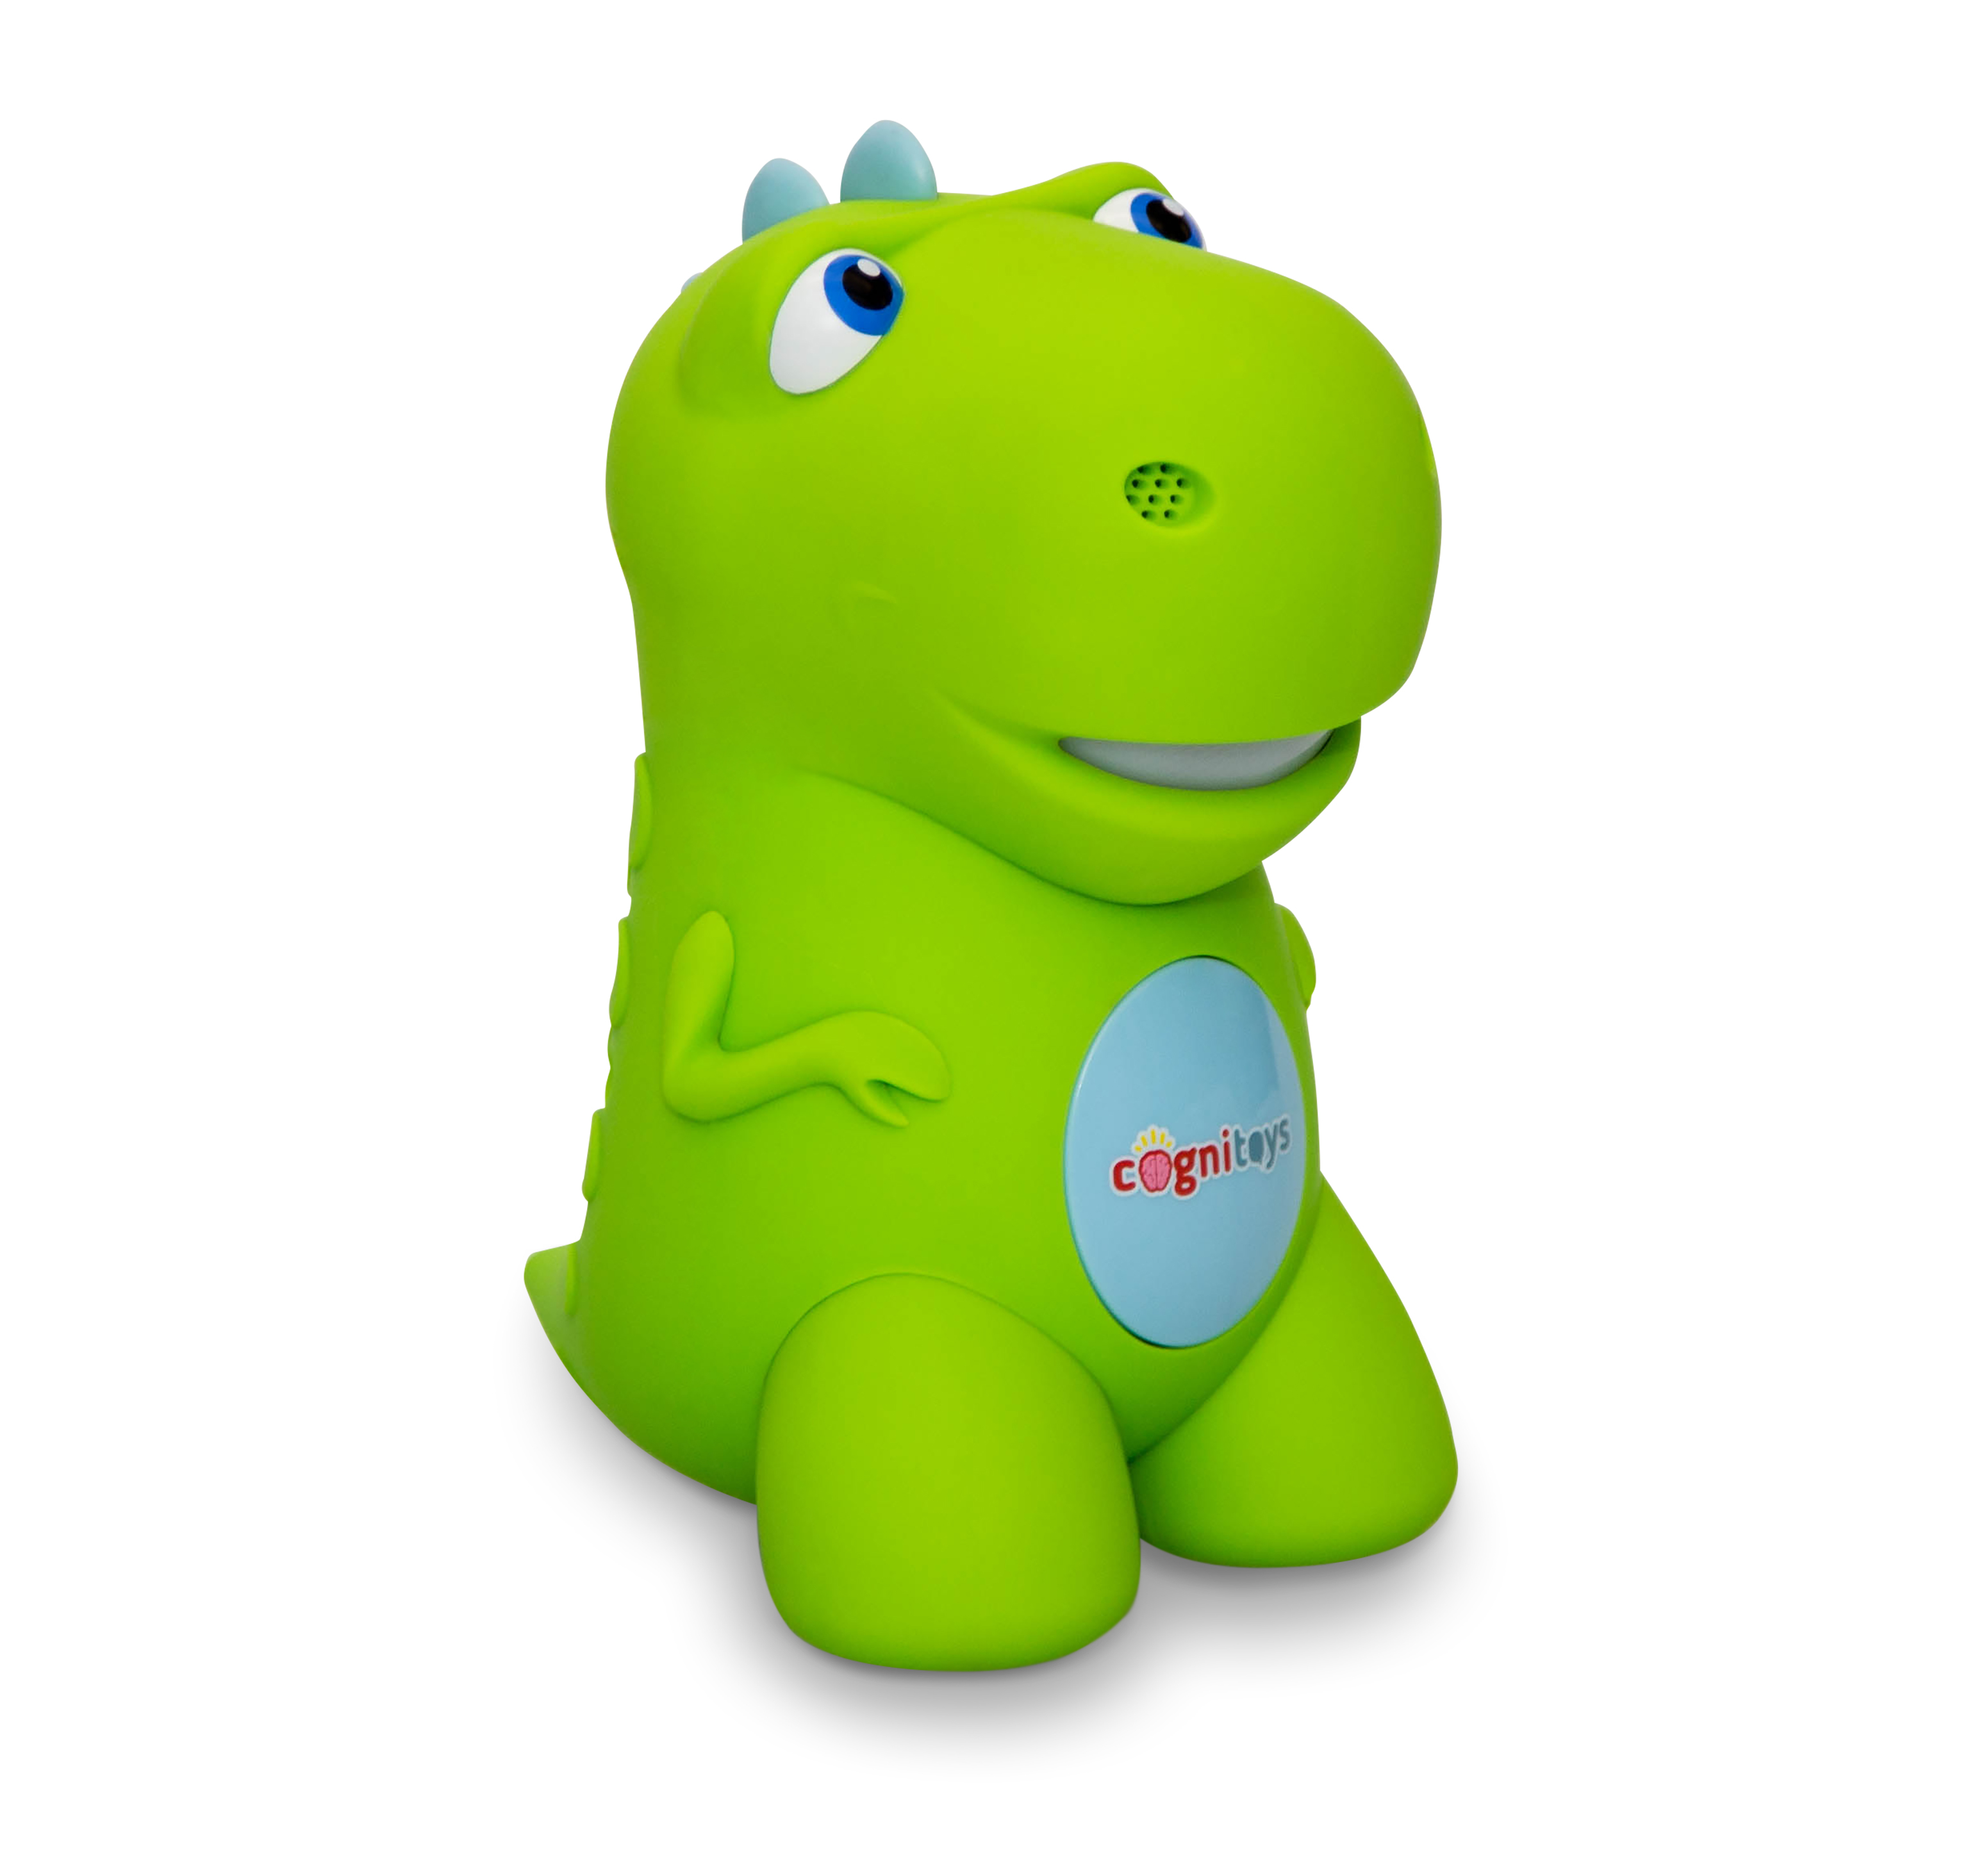 rad toy trends 2016 tech friends Cognitoys learning teaching robot dinosaur friend